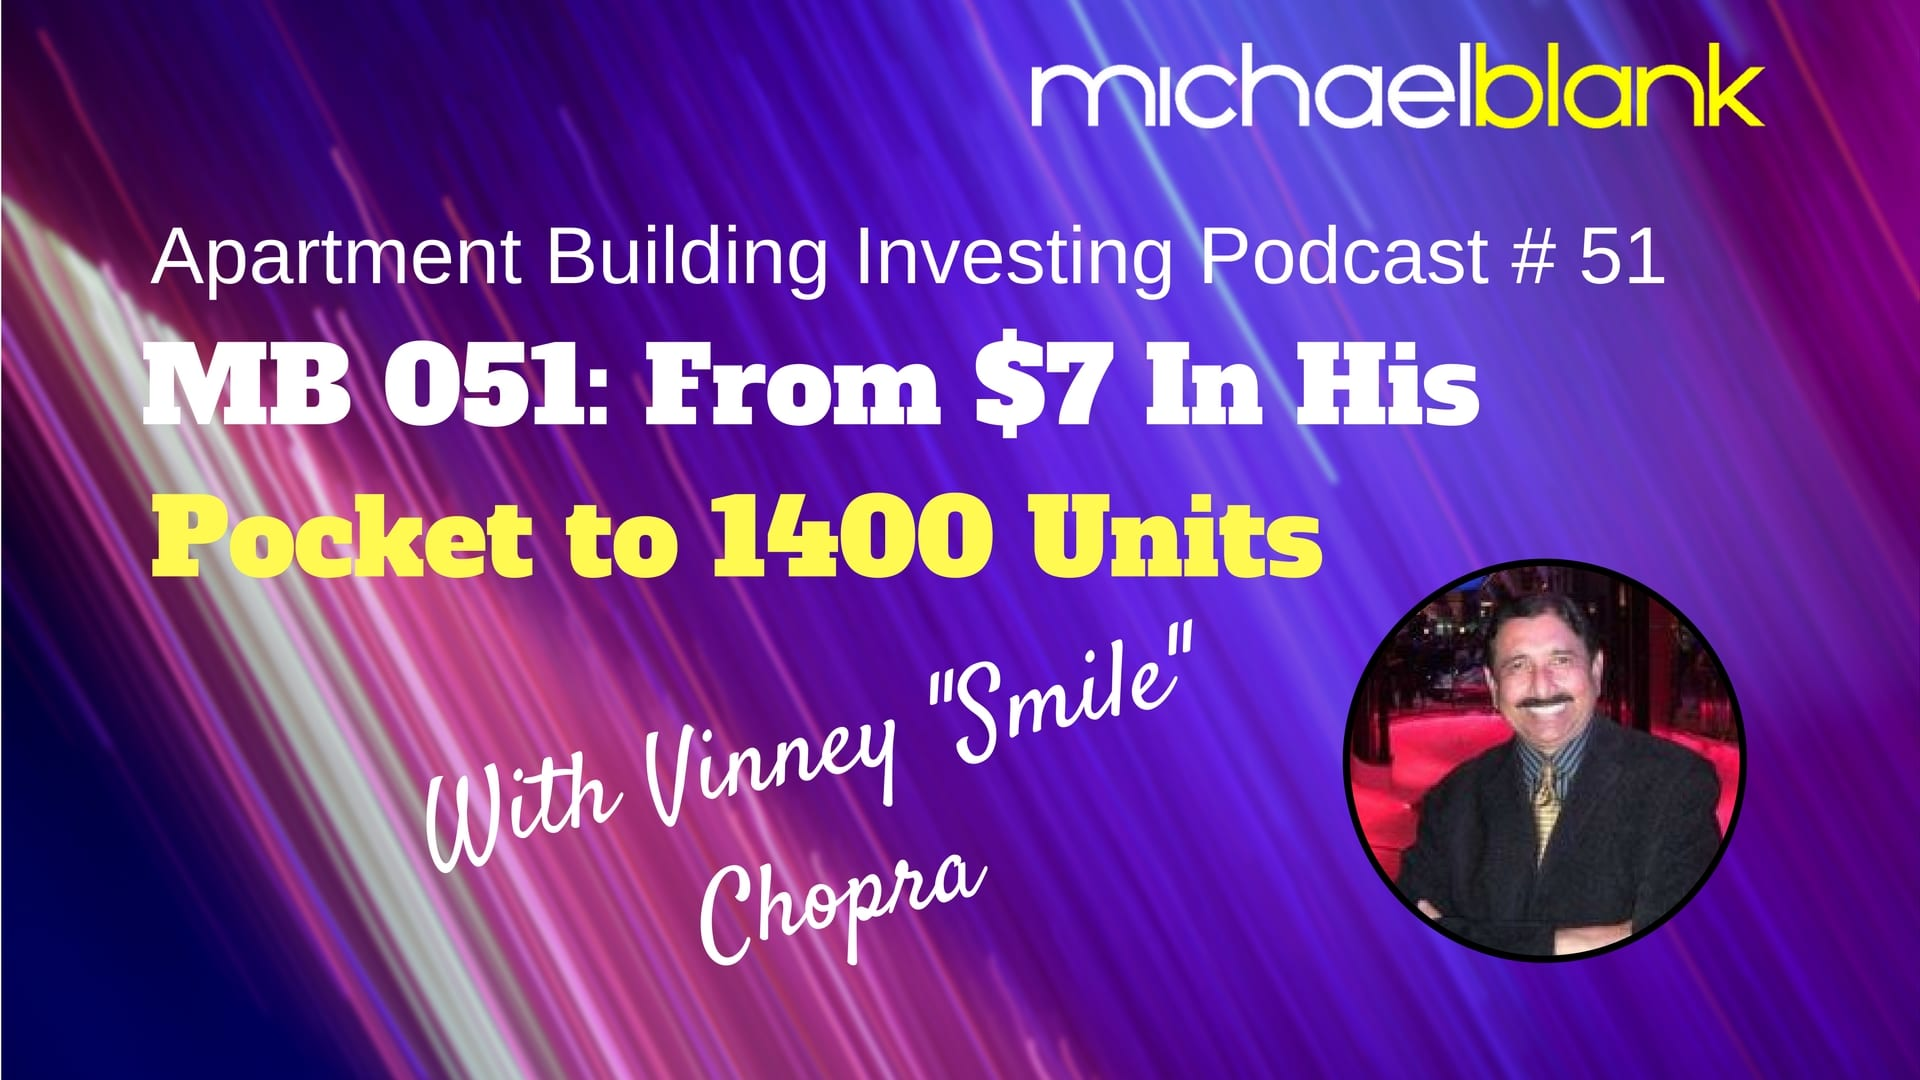 "MB 051: From $7 In His Pocket to 1400 Units (with Vinney ""Smile"" Chopra)"